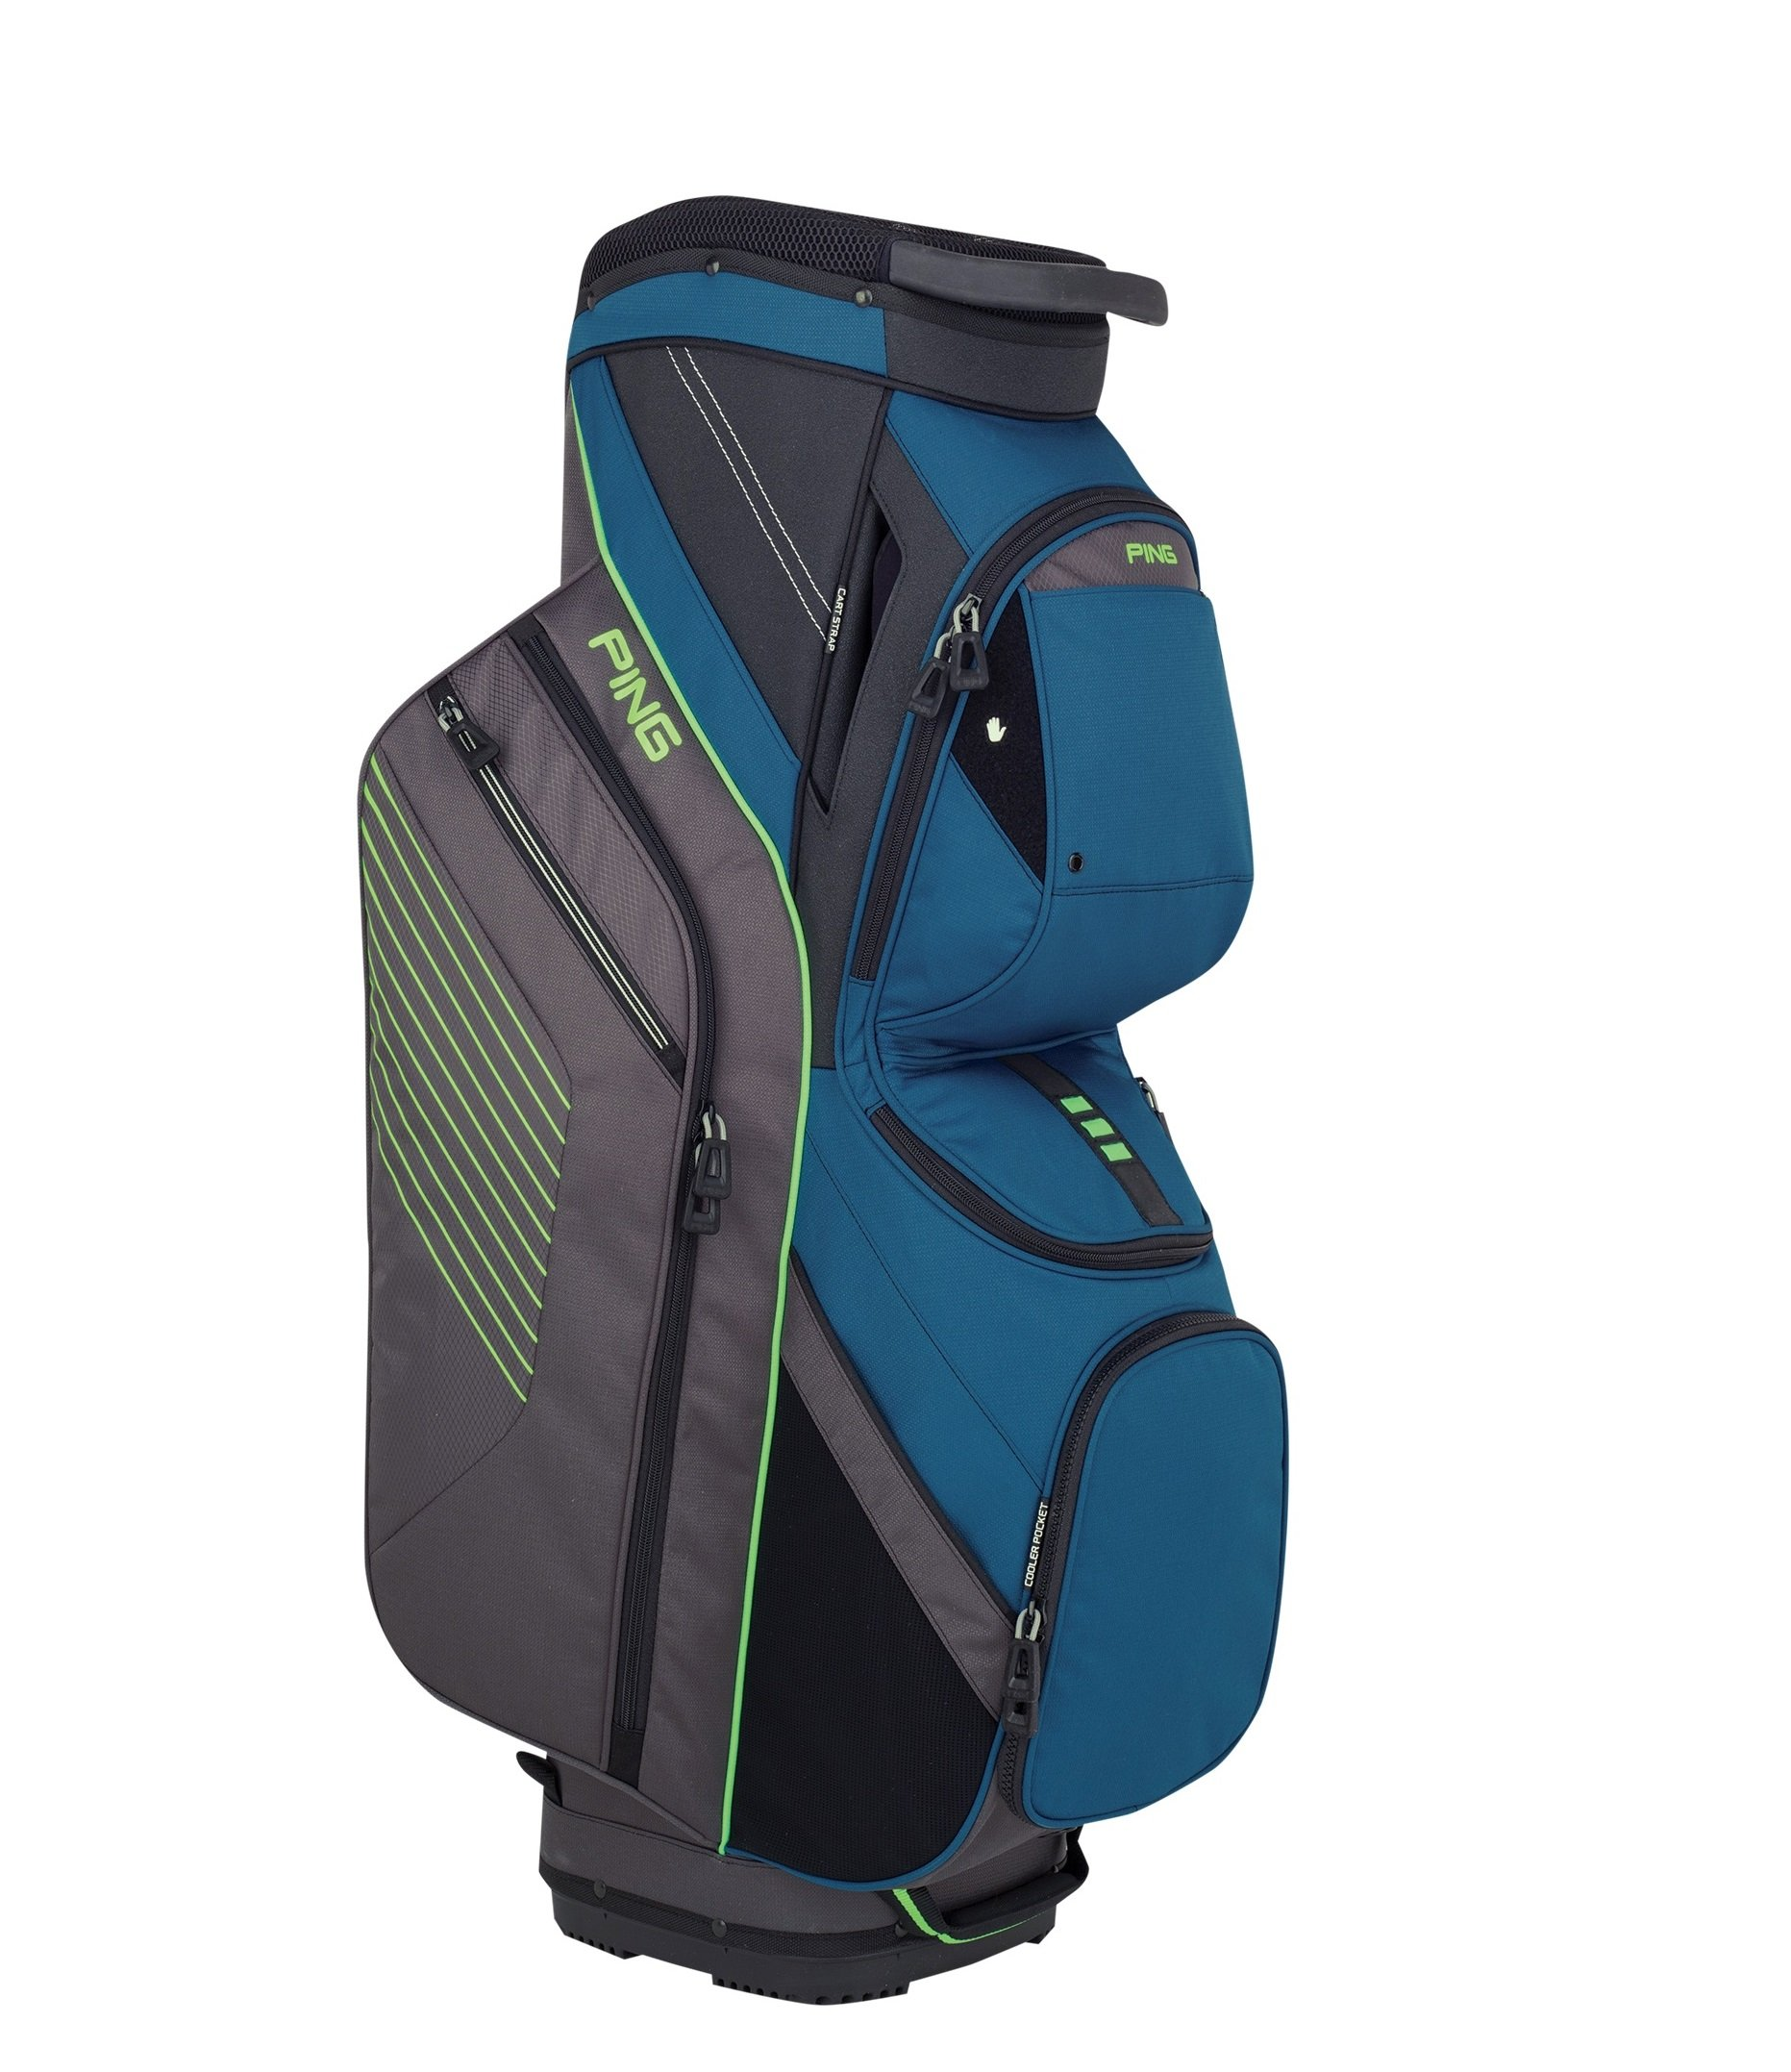 PING 2018 TRAVERSE 164 CART GOLF BAG 16 DARK TEAL/GRAPHITE/ELECTRICGREEN